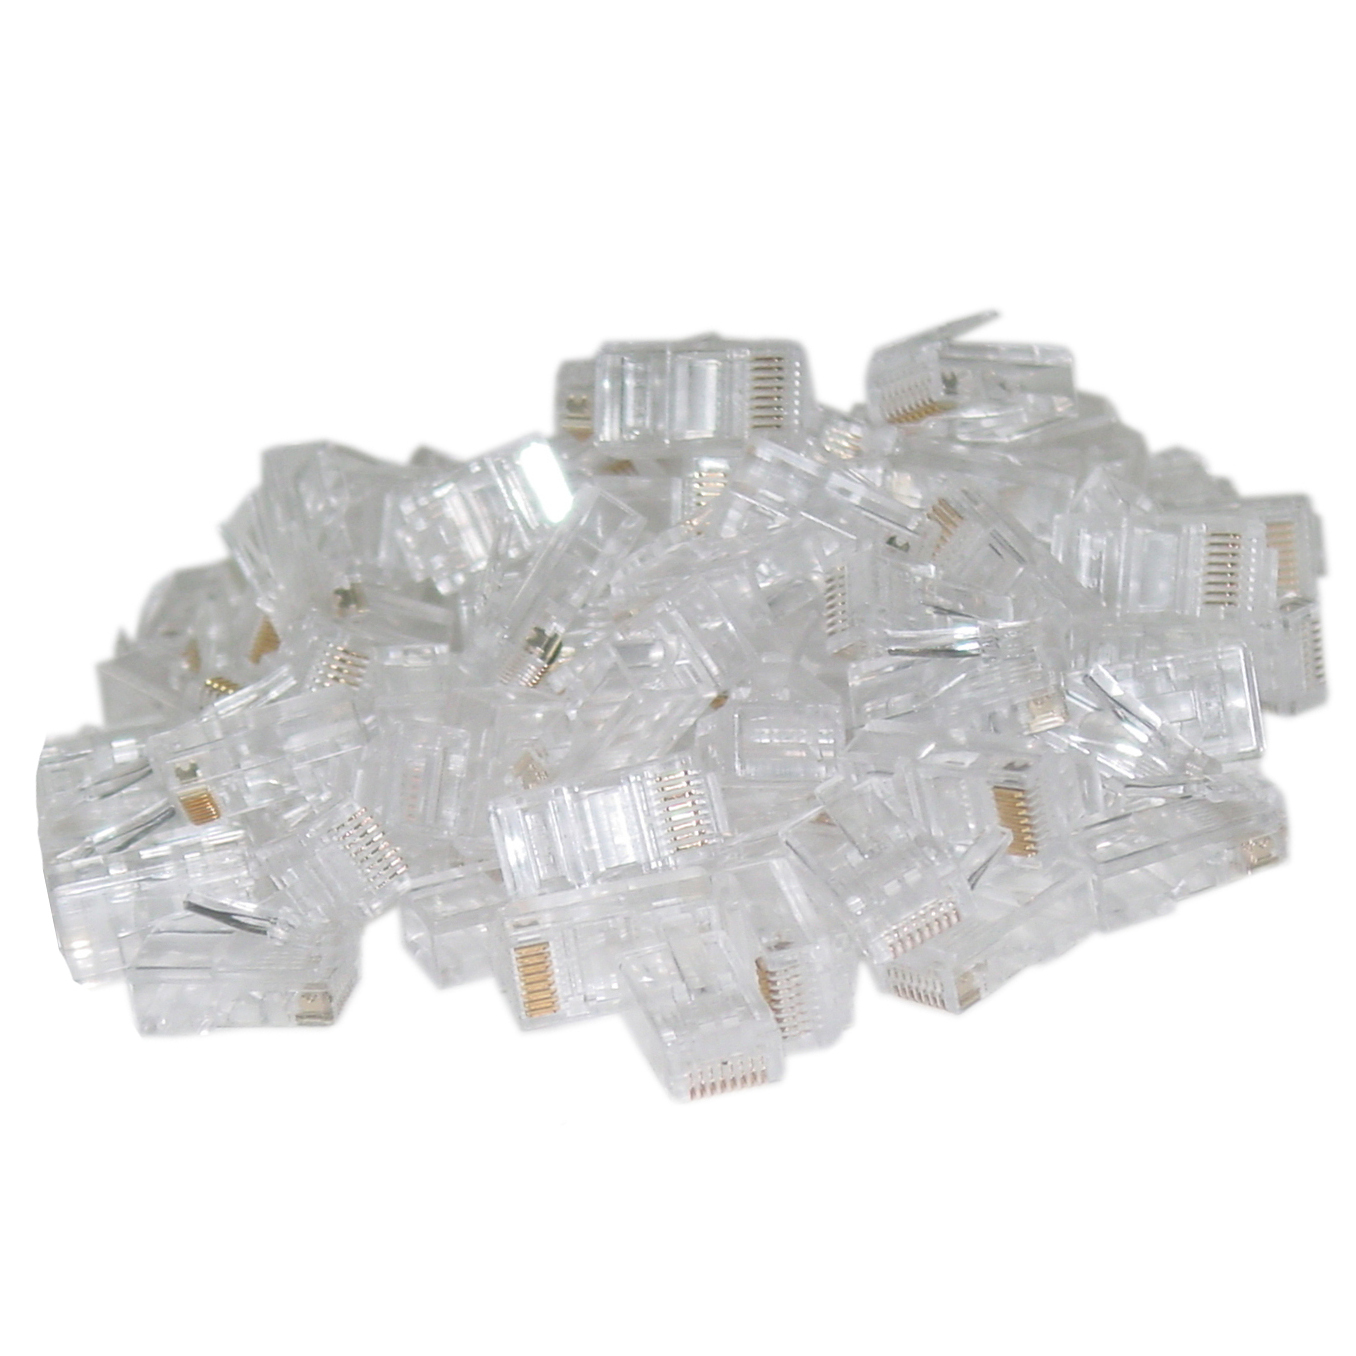 108700 - CAT6 RJ45 Crimp-On Connector Plugs for Solid Cable - Bag of 50